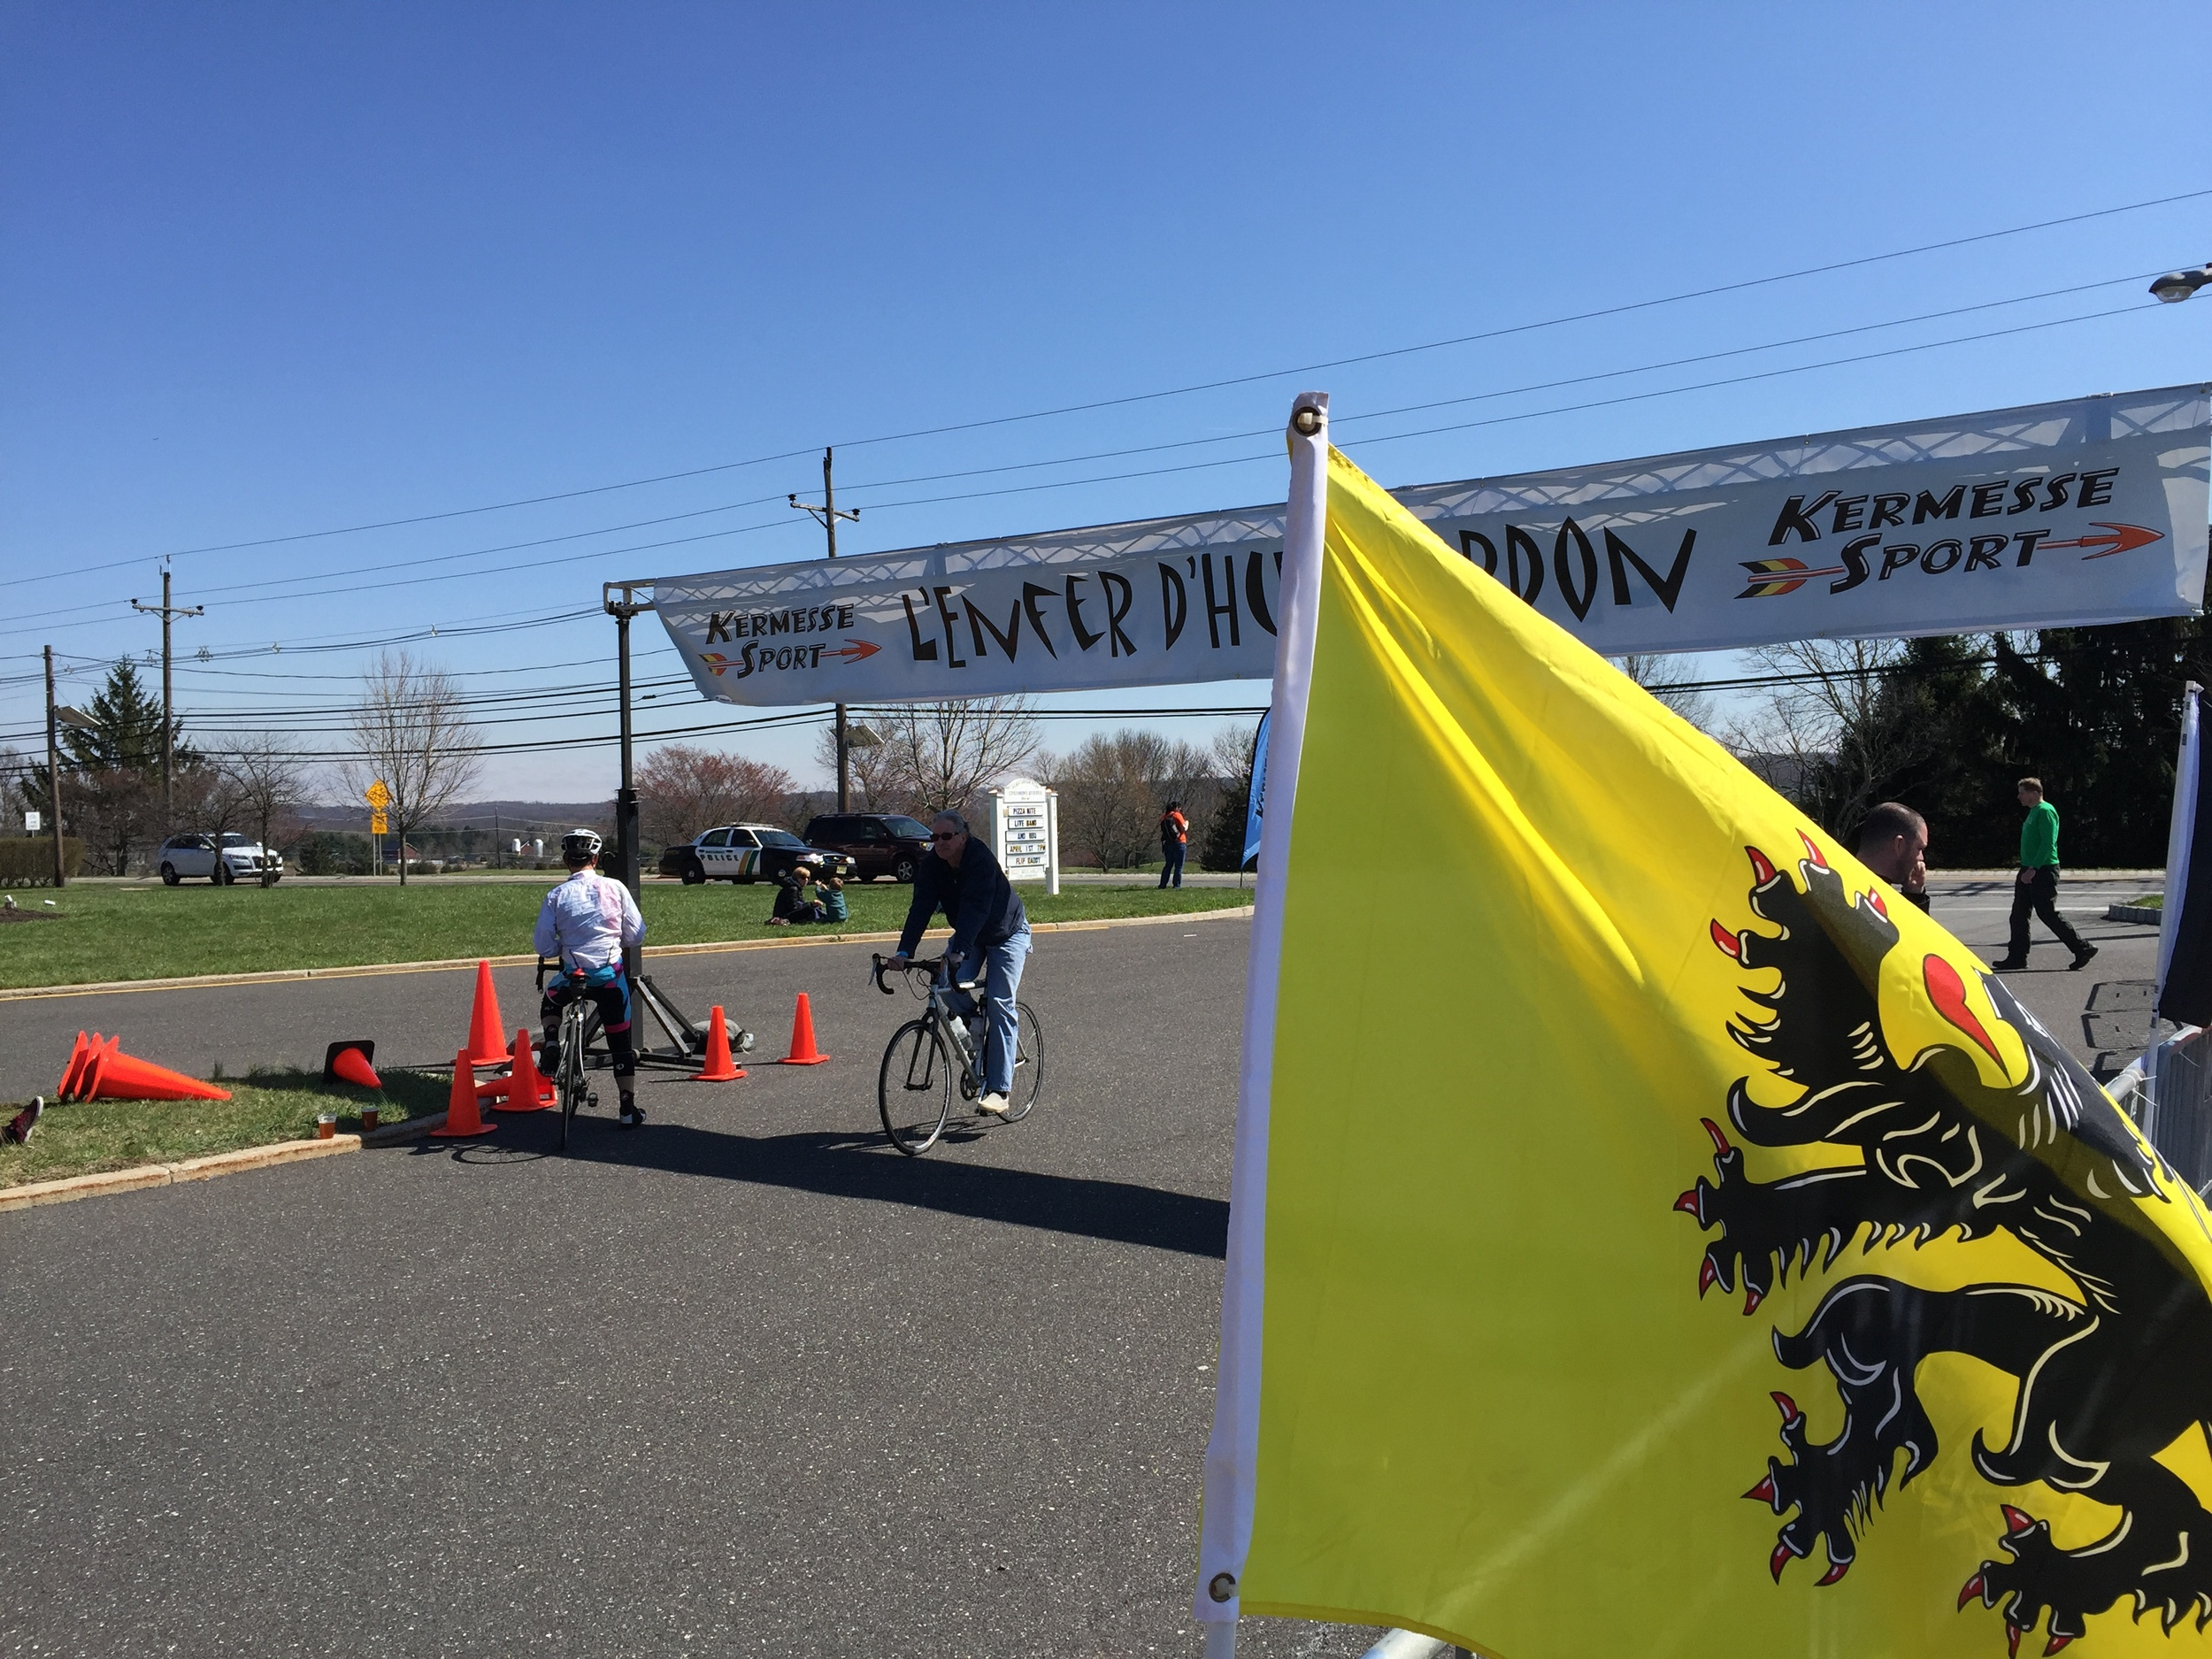 The start/ finish line saw riders continuing to cross it well after 4 o'clock.